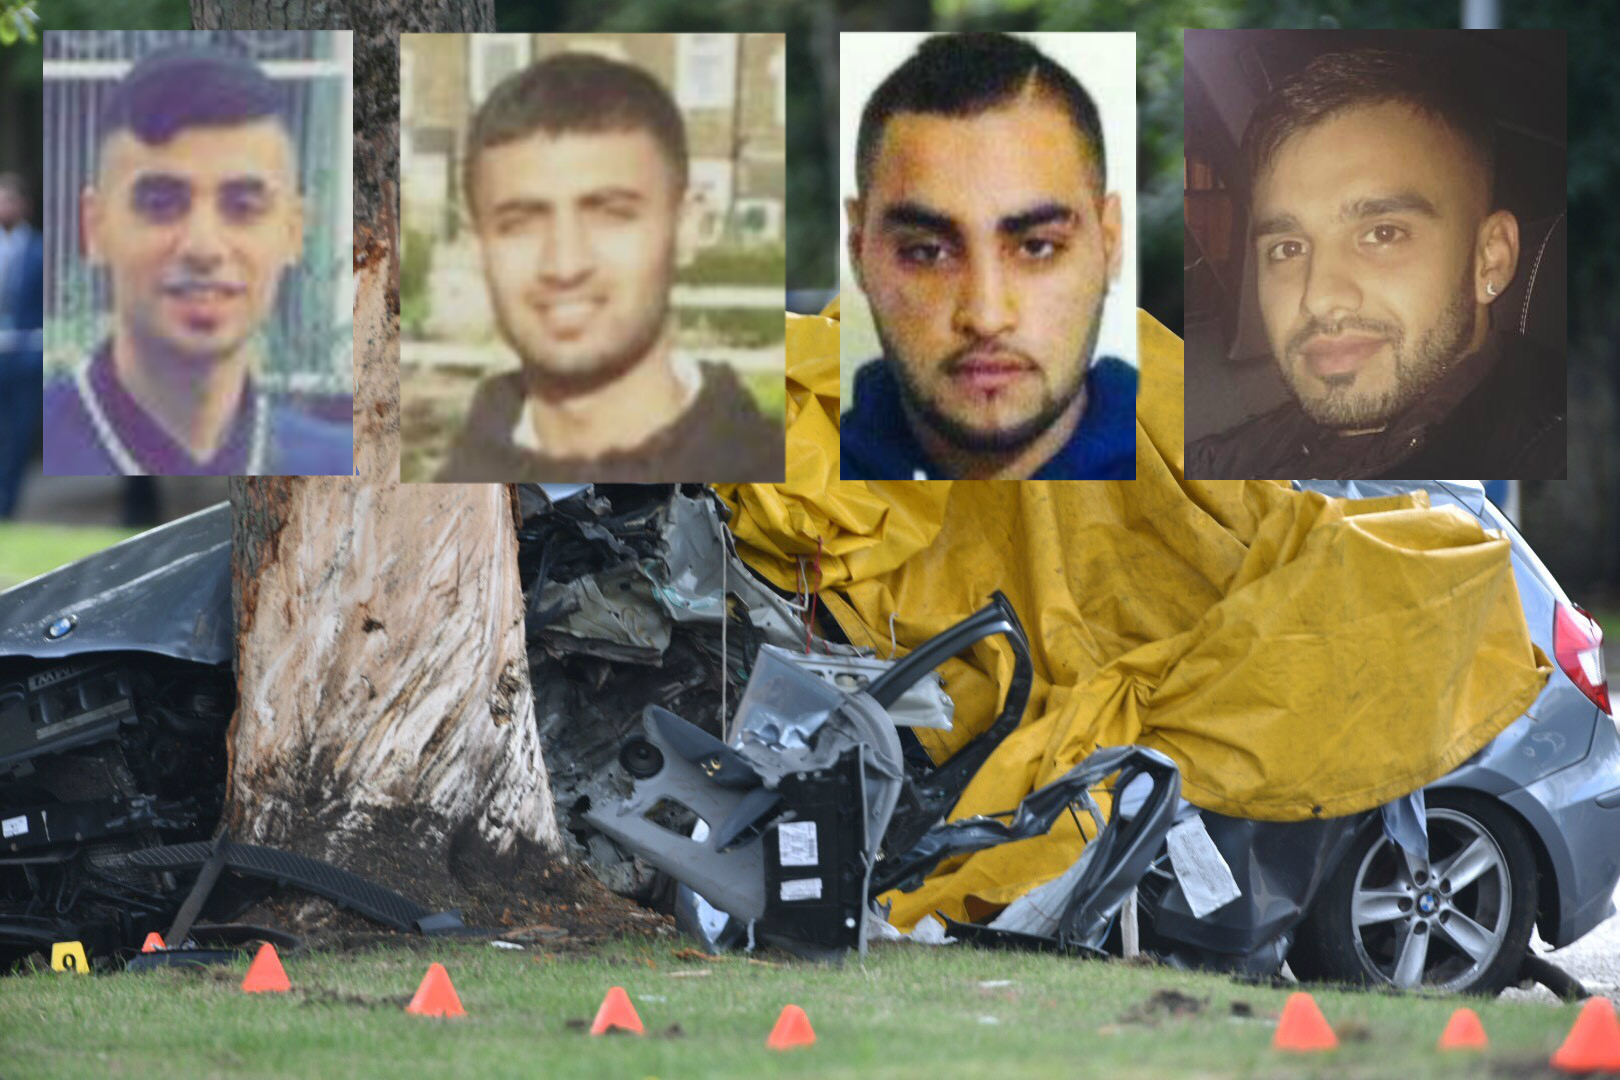 Murza Chaudry, Zeeshan Khalid, Arbaaz Hussain and Tayyab Siddique were all killed in the crash in Toller Lane, Bradford on August 2